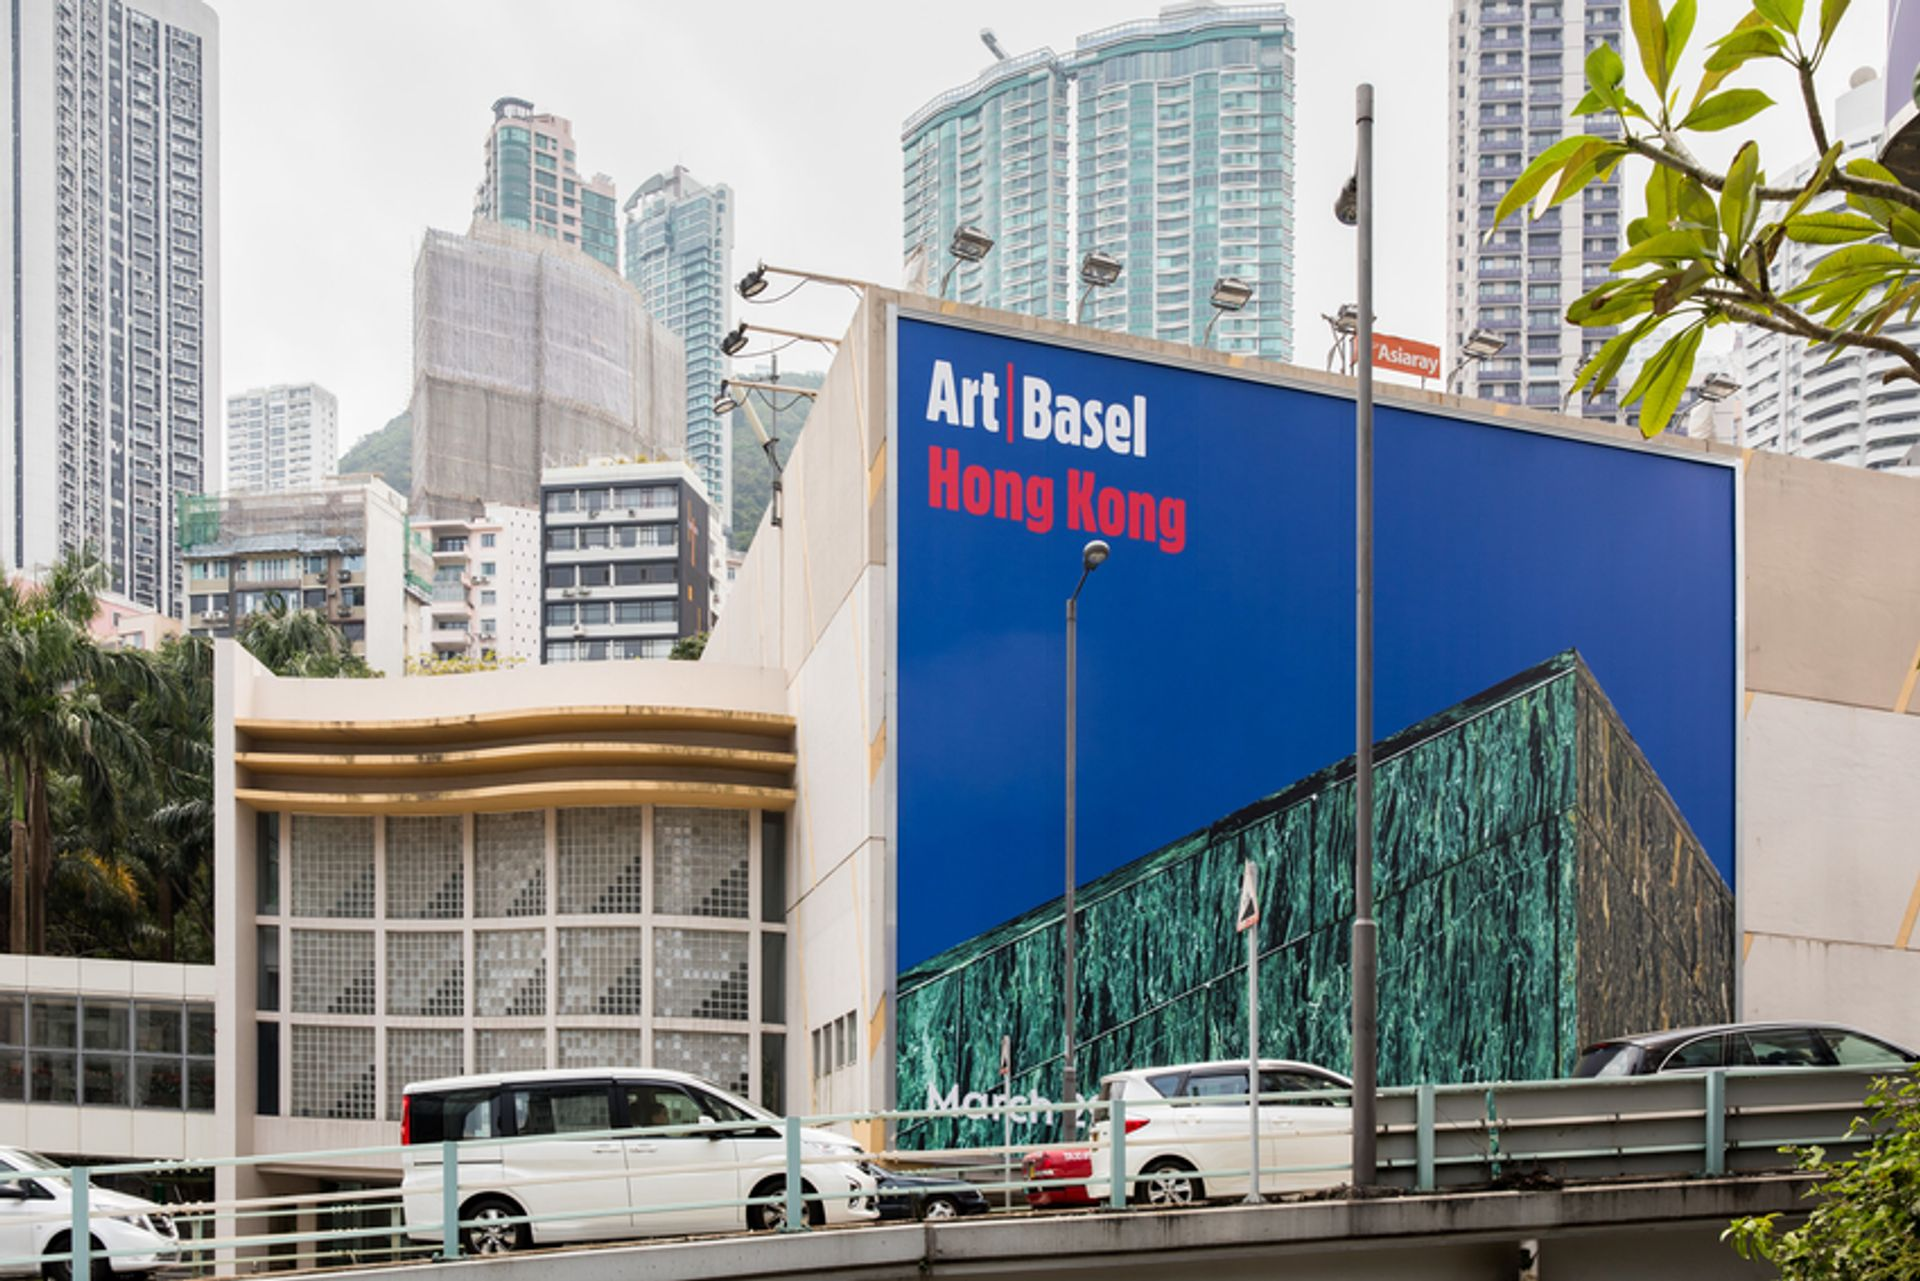 The 2020 edition of Art Basel in Hong Kong was cancelled due to coronavirus concerns.